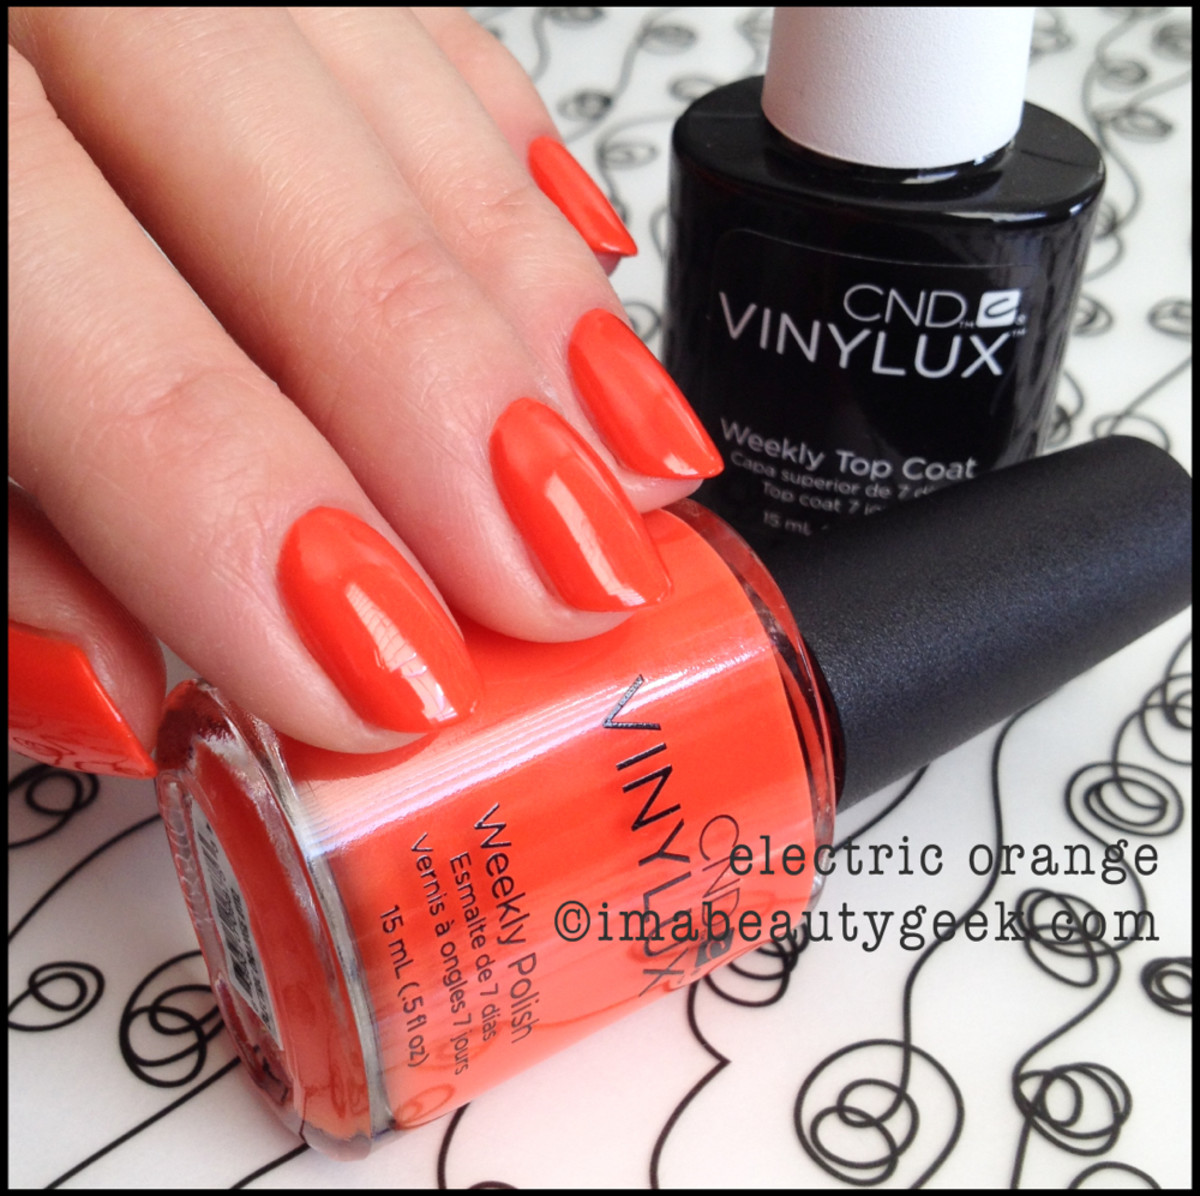 CND vinylux Electric Orange_cnd vinylux summer 2014